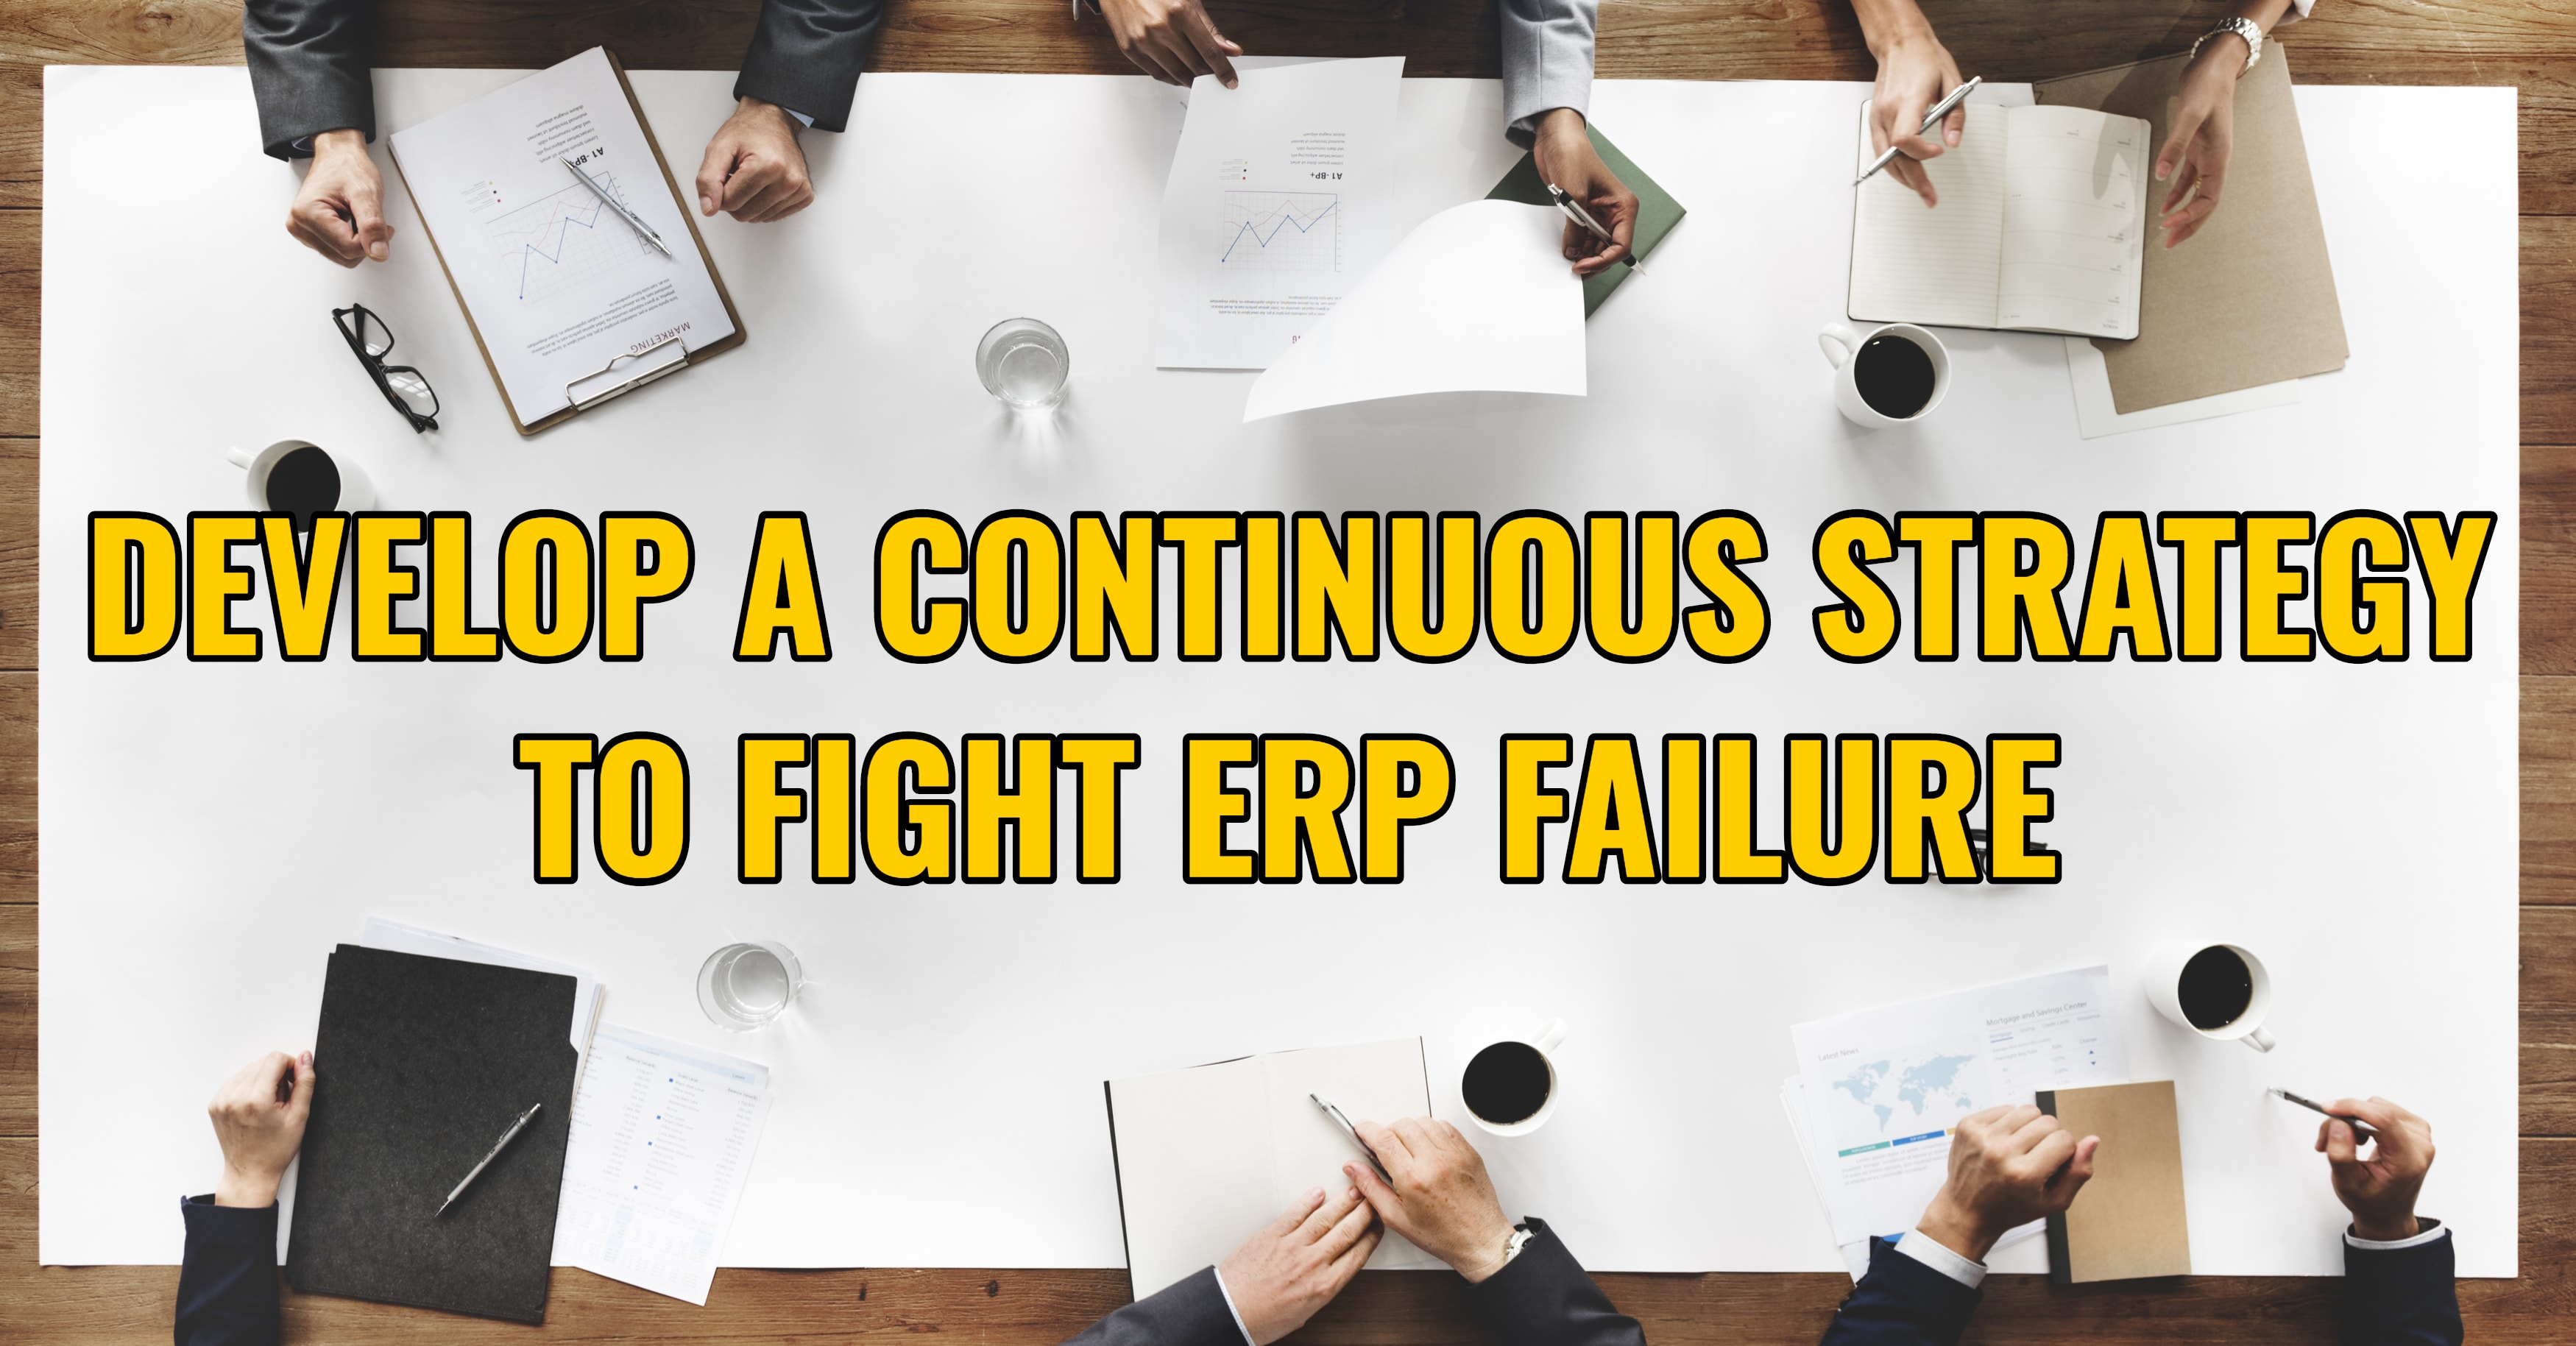 Develop a Continuous Strategy to Fight ERP Failure